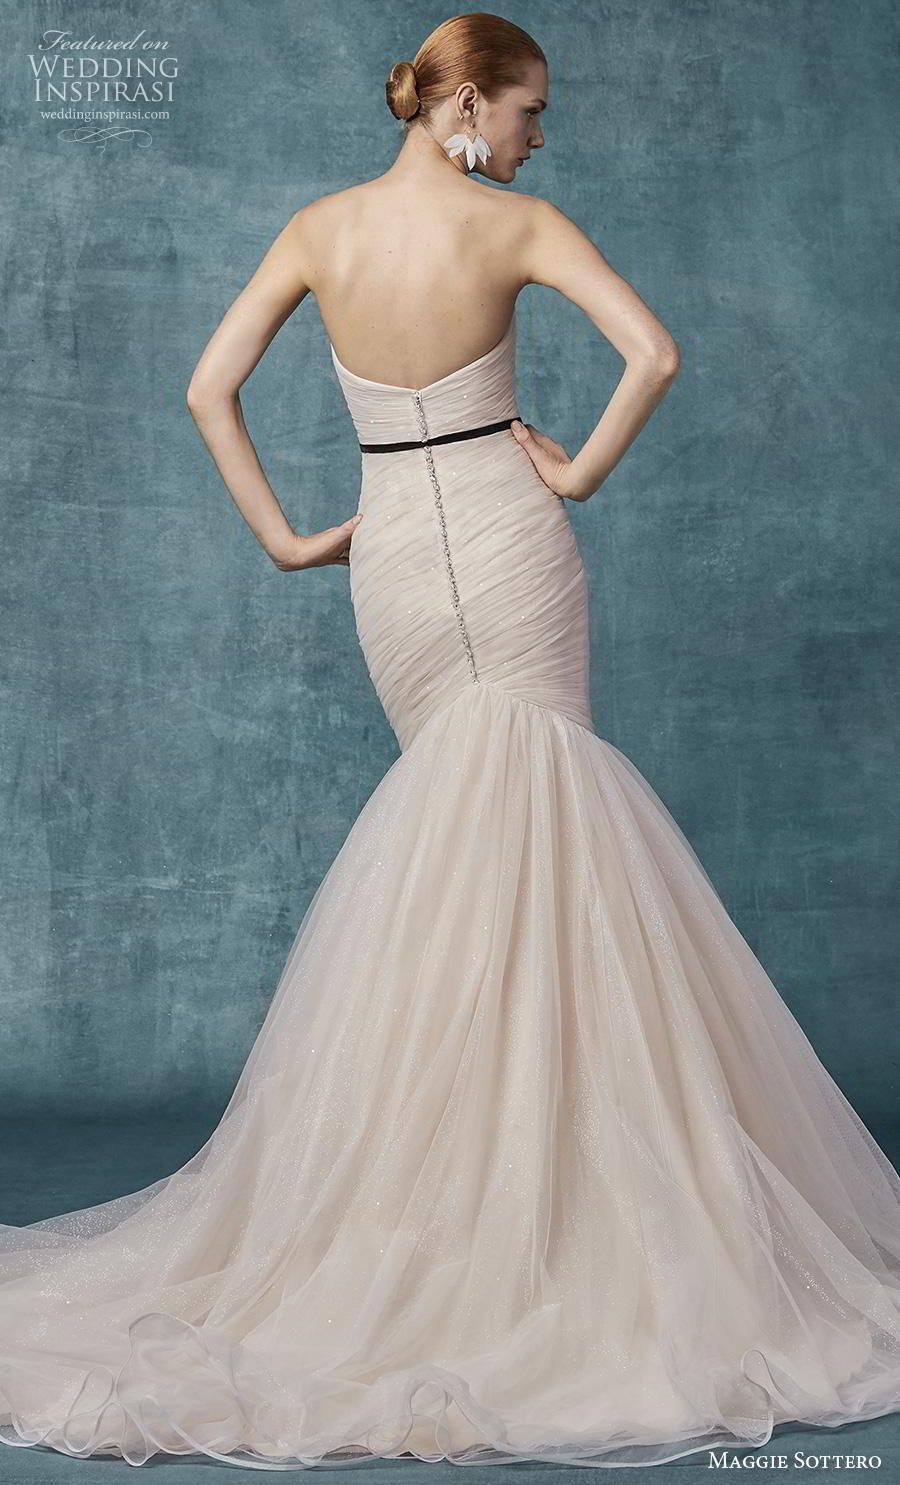 53bf4a07a1f Weddinginspirasi.com featuring - maggie sottero spring 2019 bridal  strapless sweetheart neckline wrap over ruched bodice simple blush mermaid  wedding dress ...